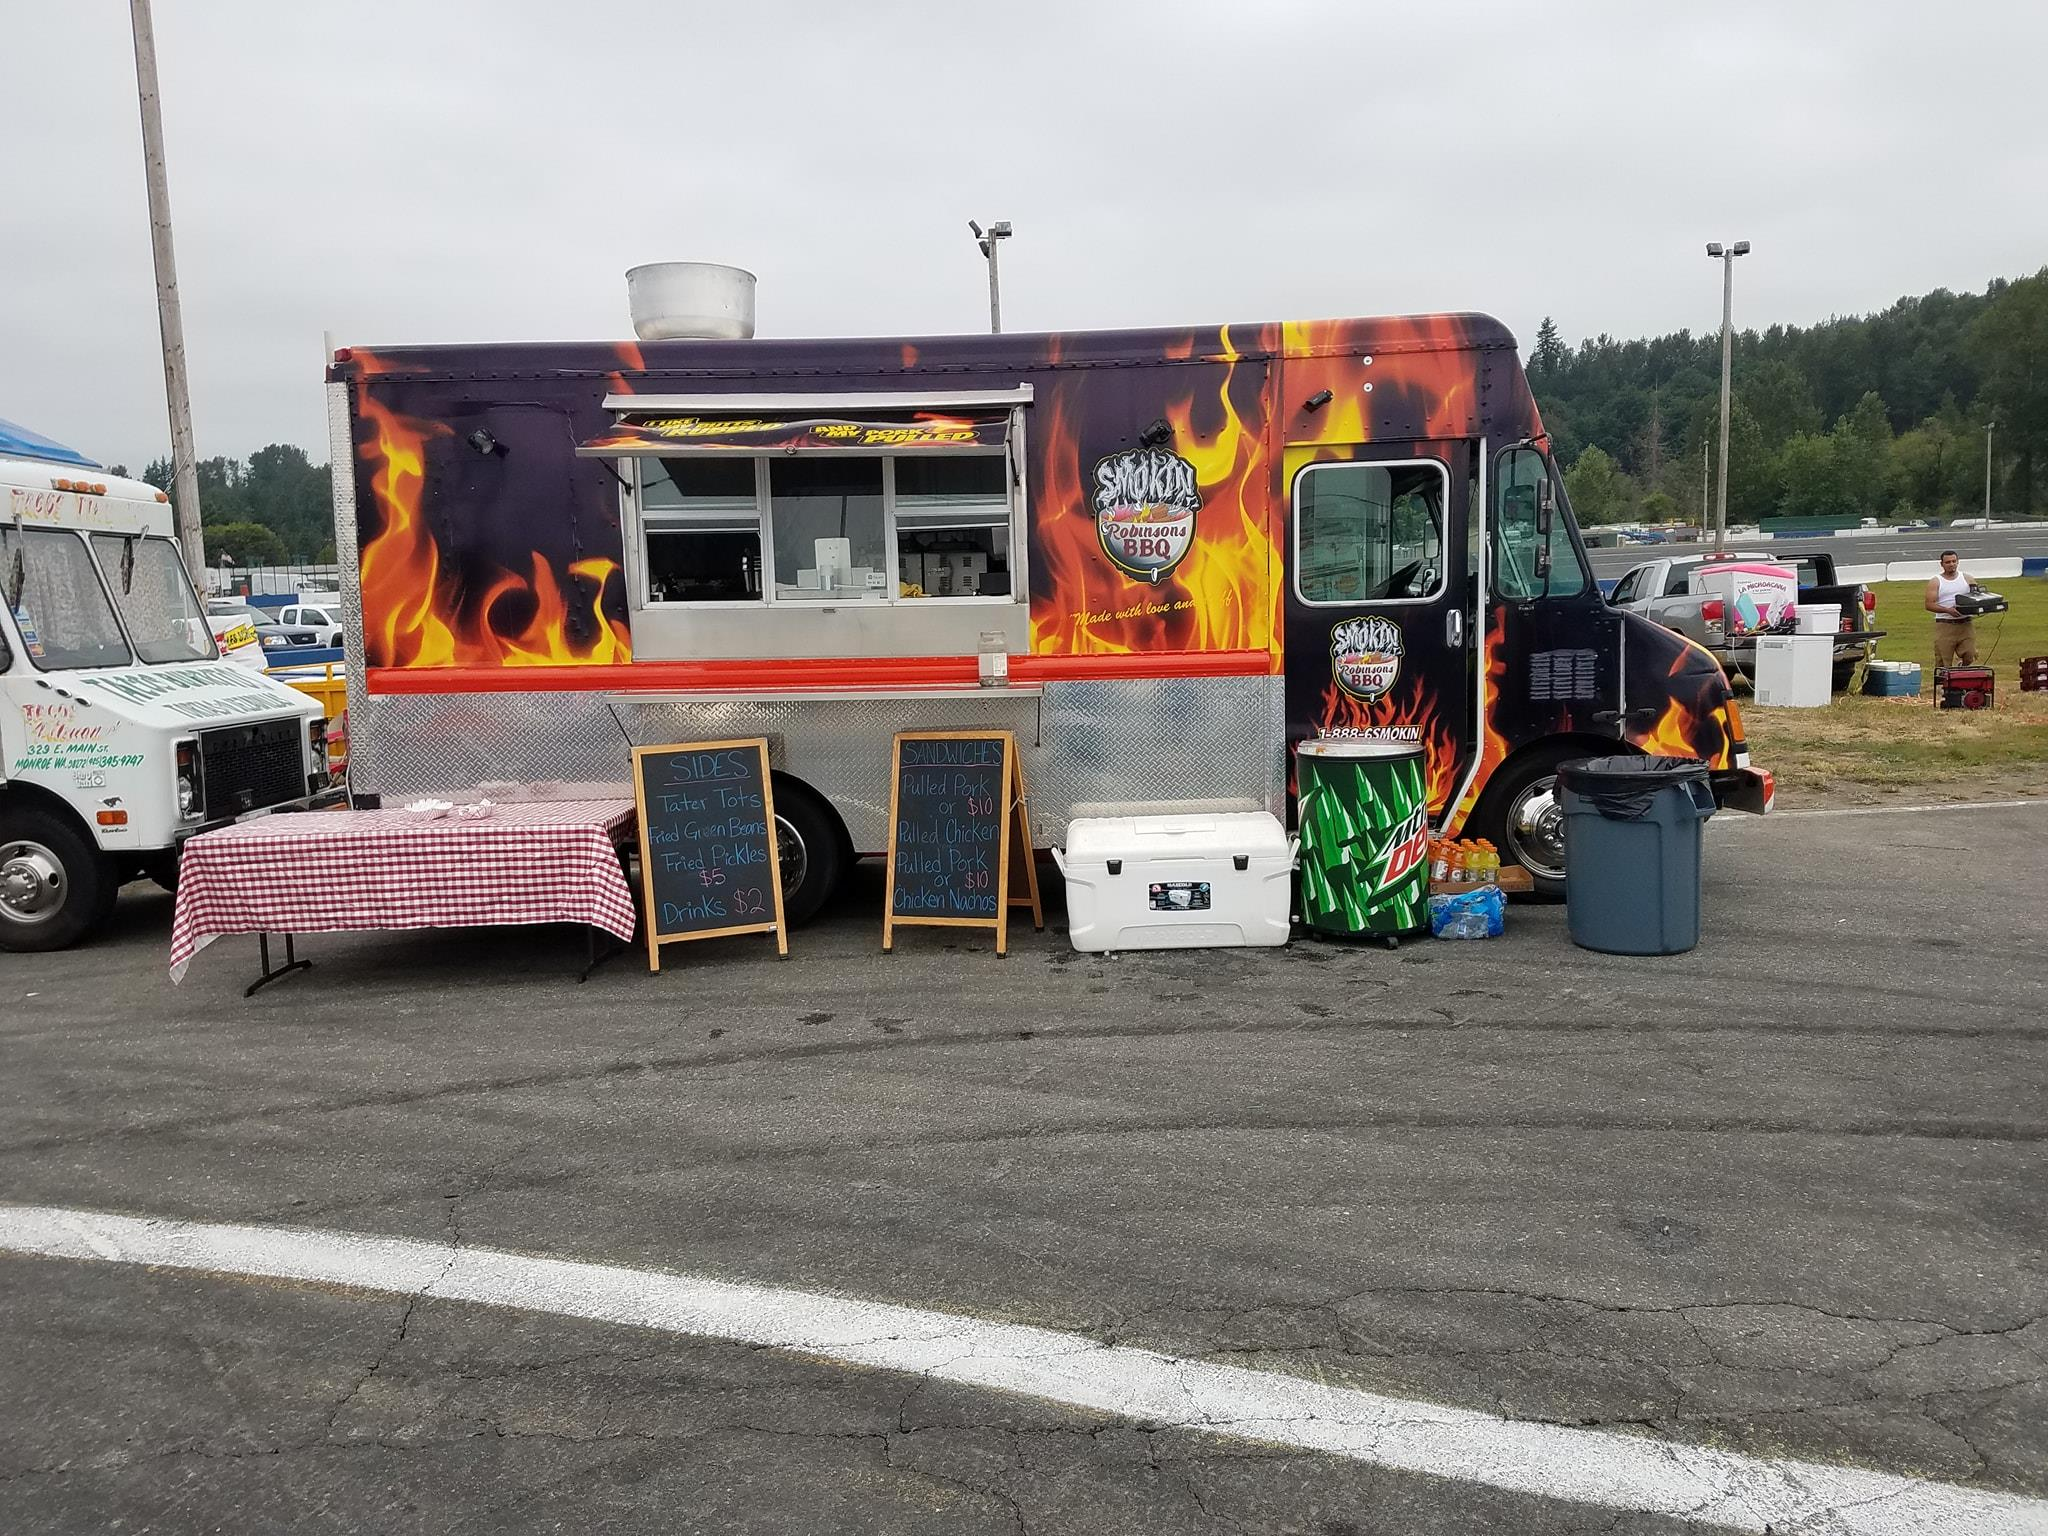 Smokin Robinsons - Delicious BBQ available on campus